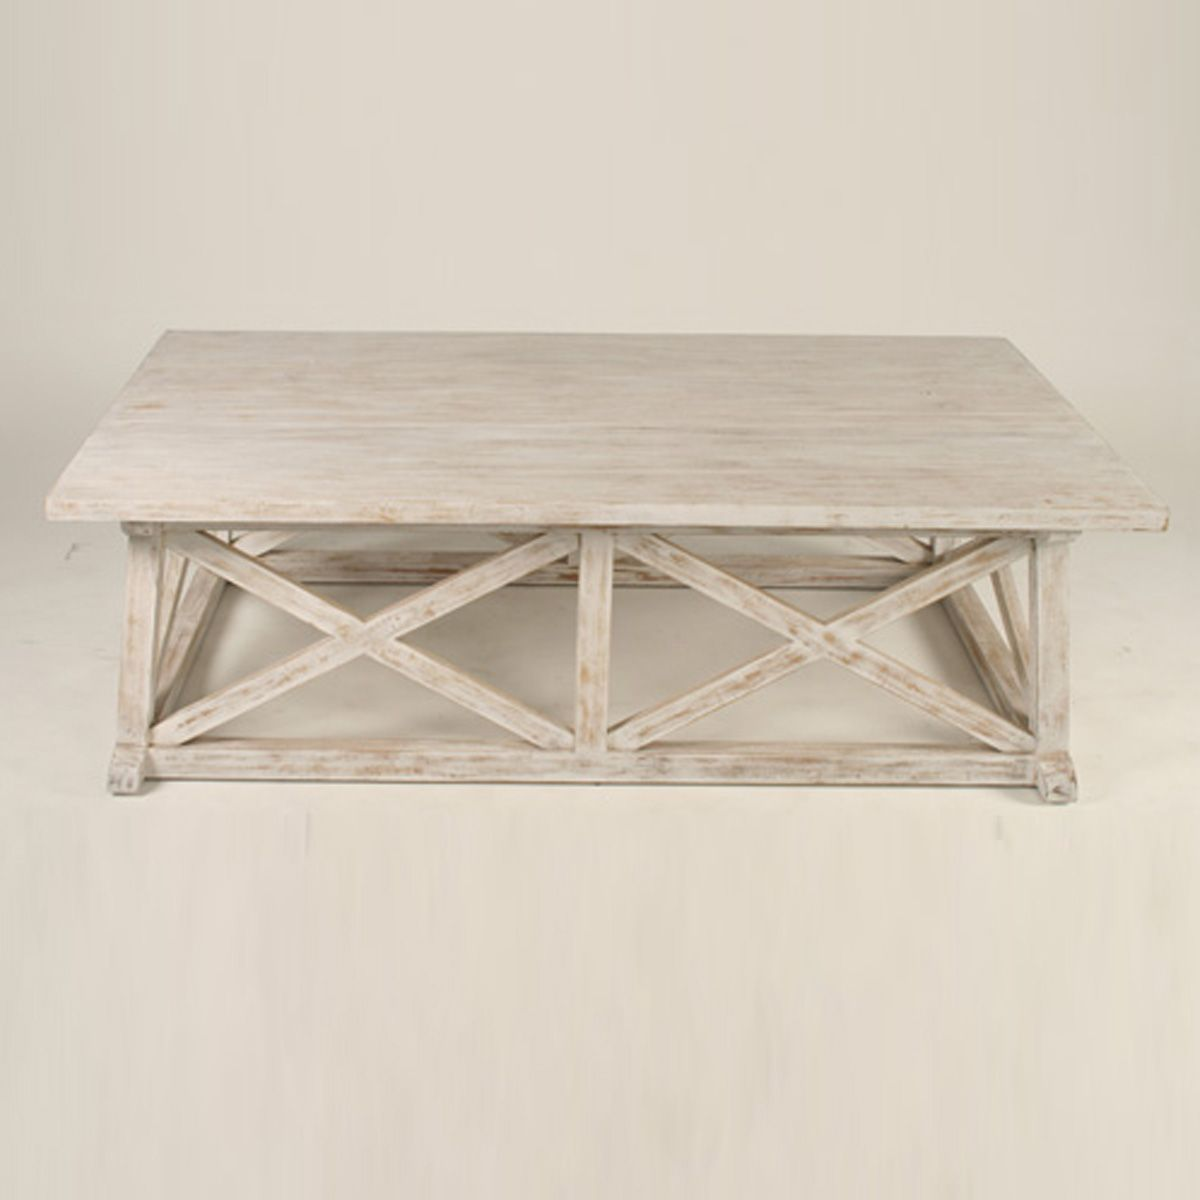 A New Collection Of White Washed Furniture Has Arrived At Our Boat House